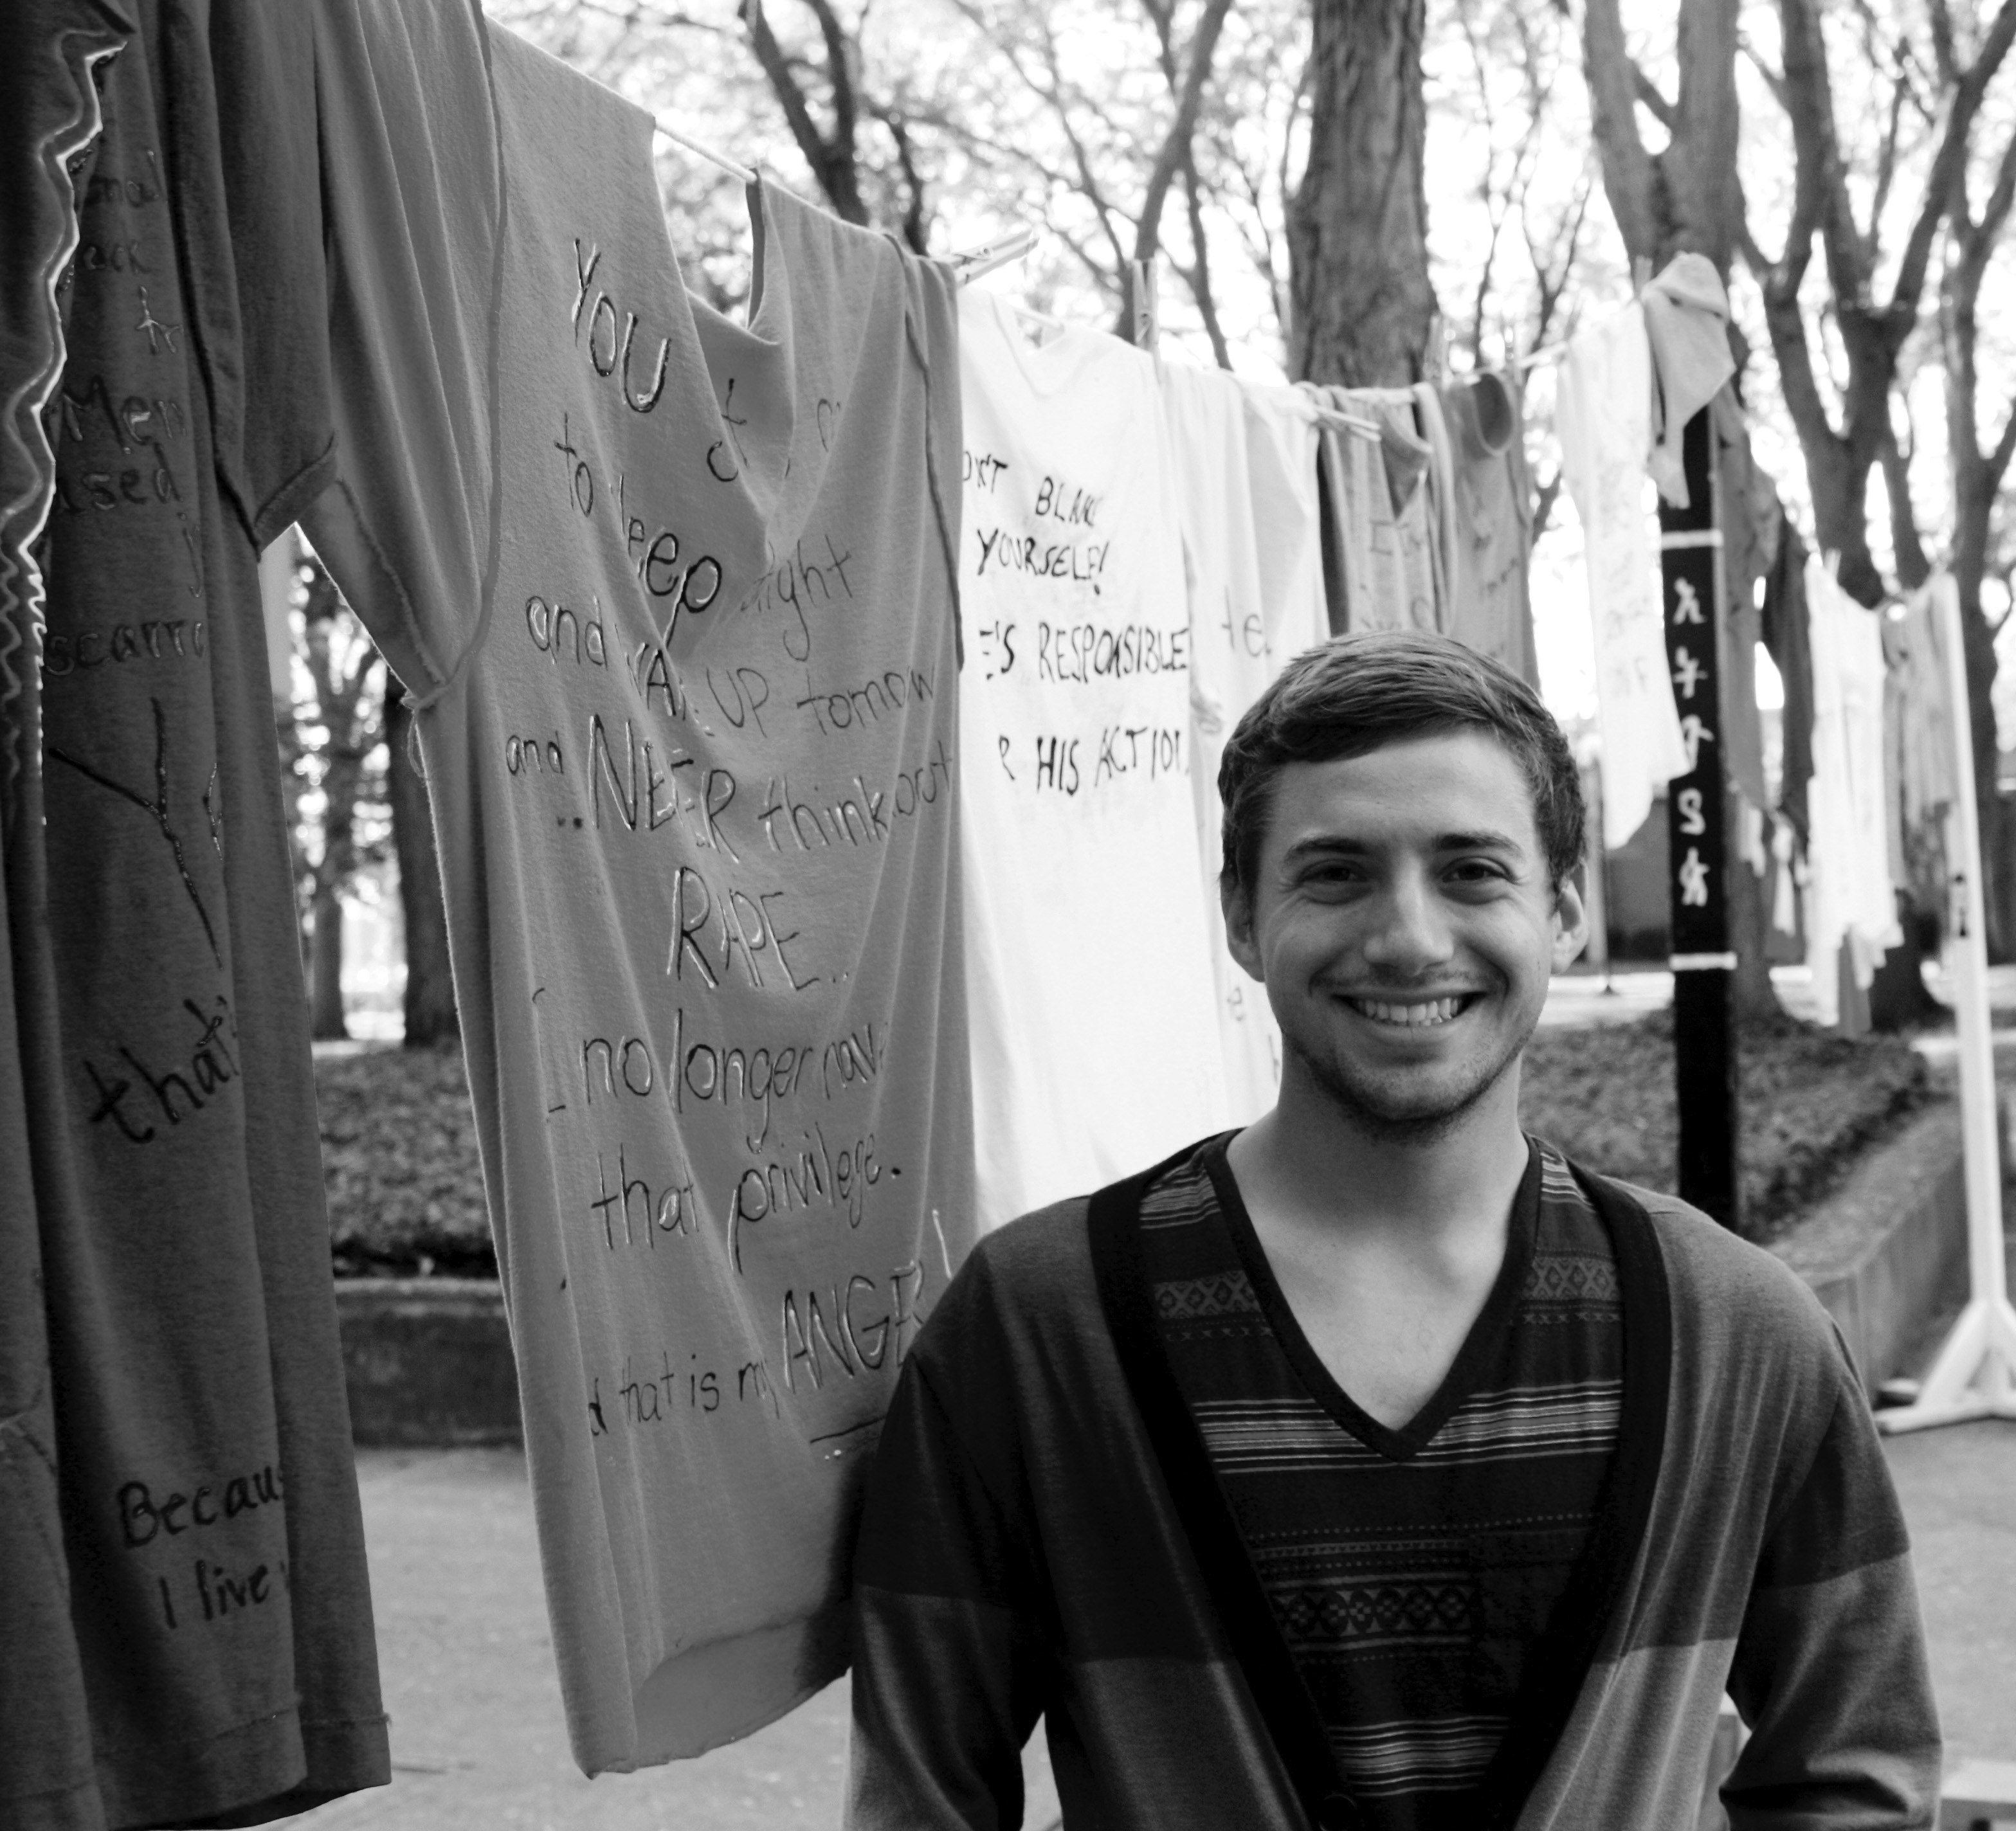 Stefan stands by the T-shirts hanging on a clothesline in Schrock Plaza for the PIN clothesline project